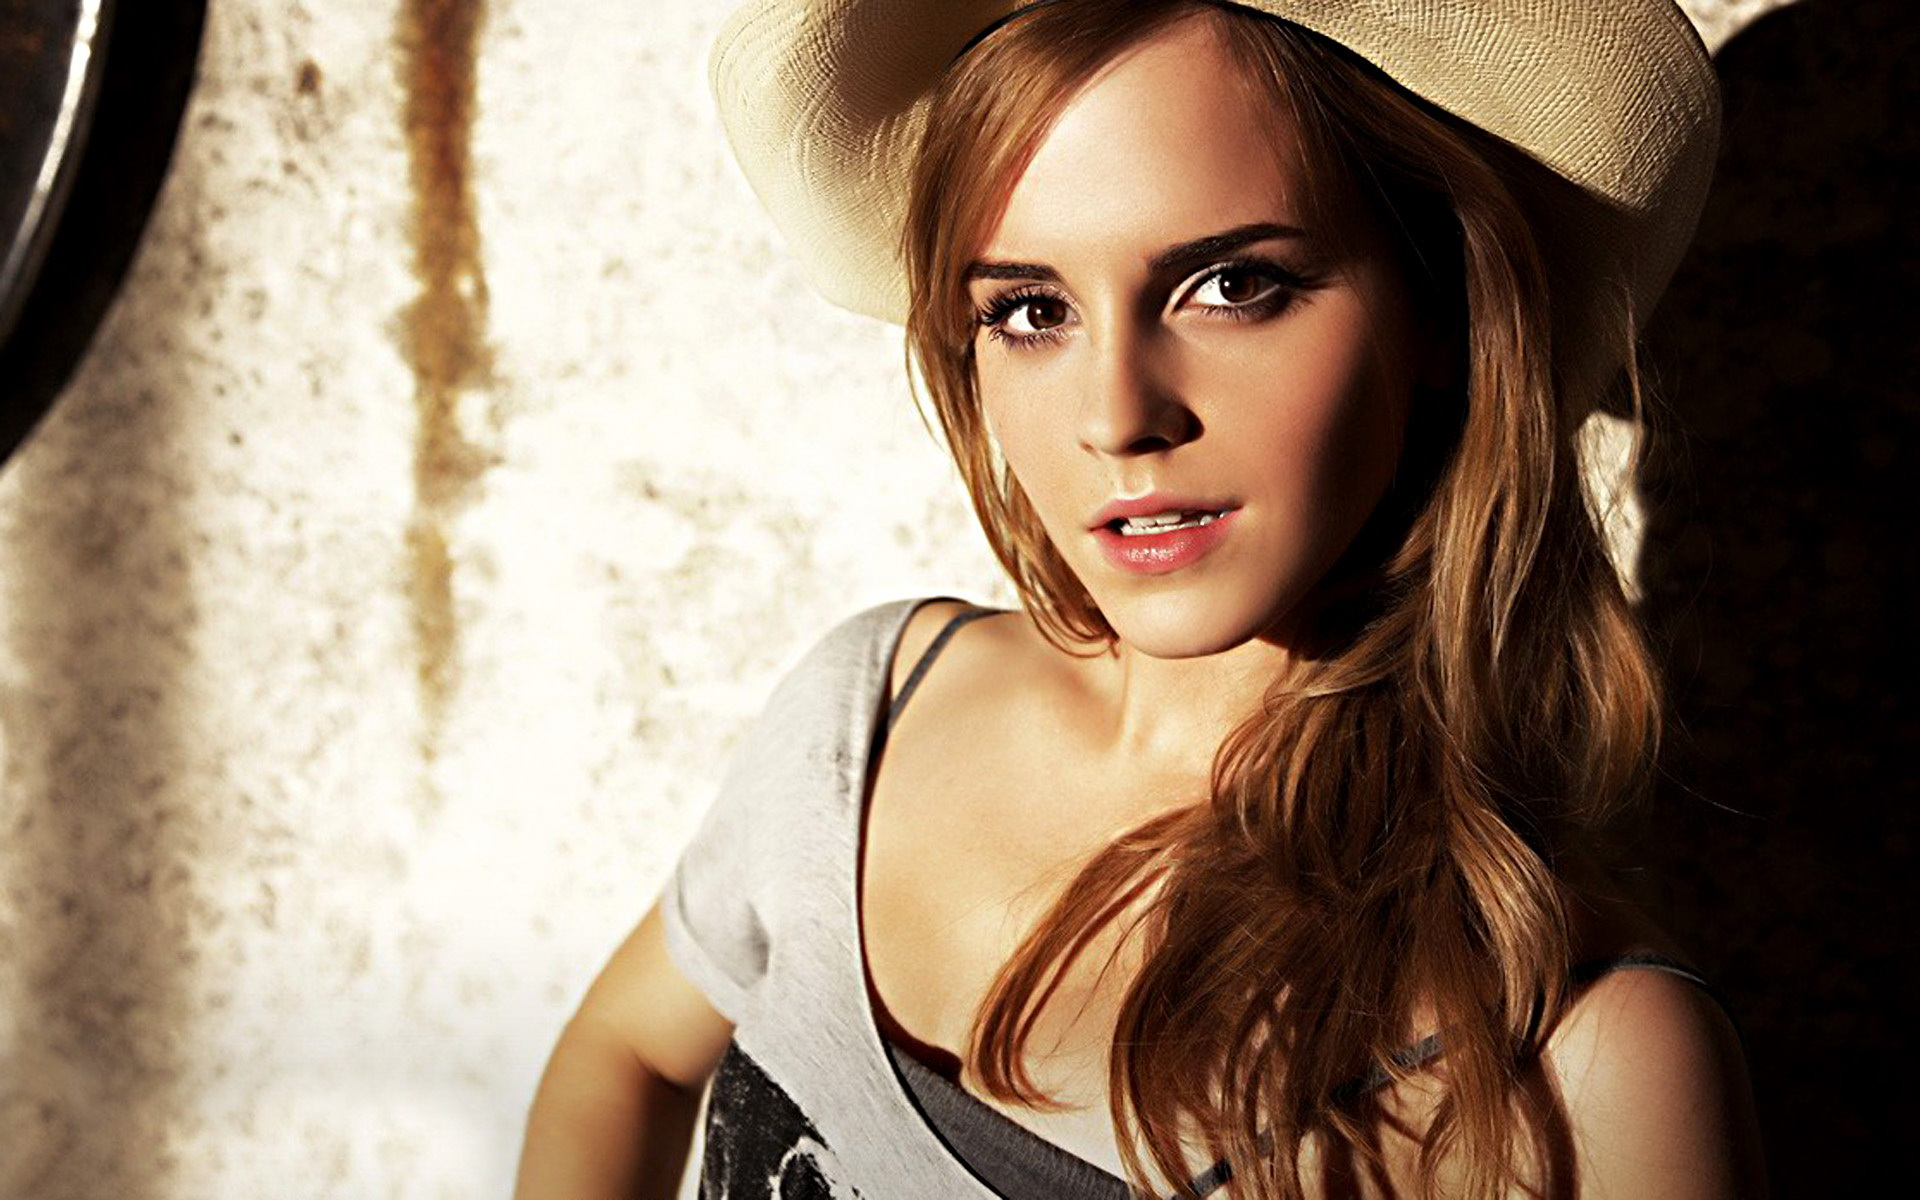 619 emma watson hd wallpapers | background images - wallpaper abyss